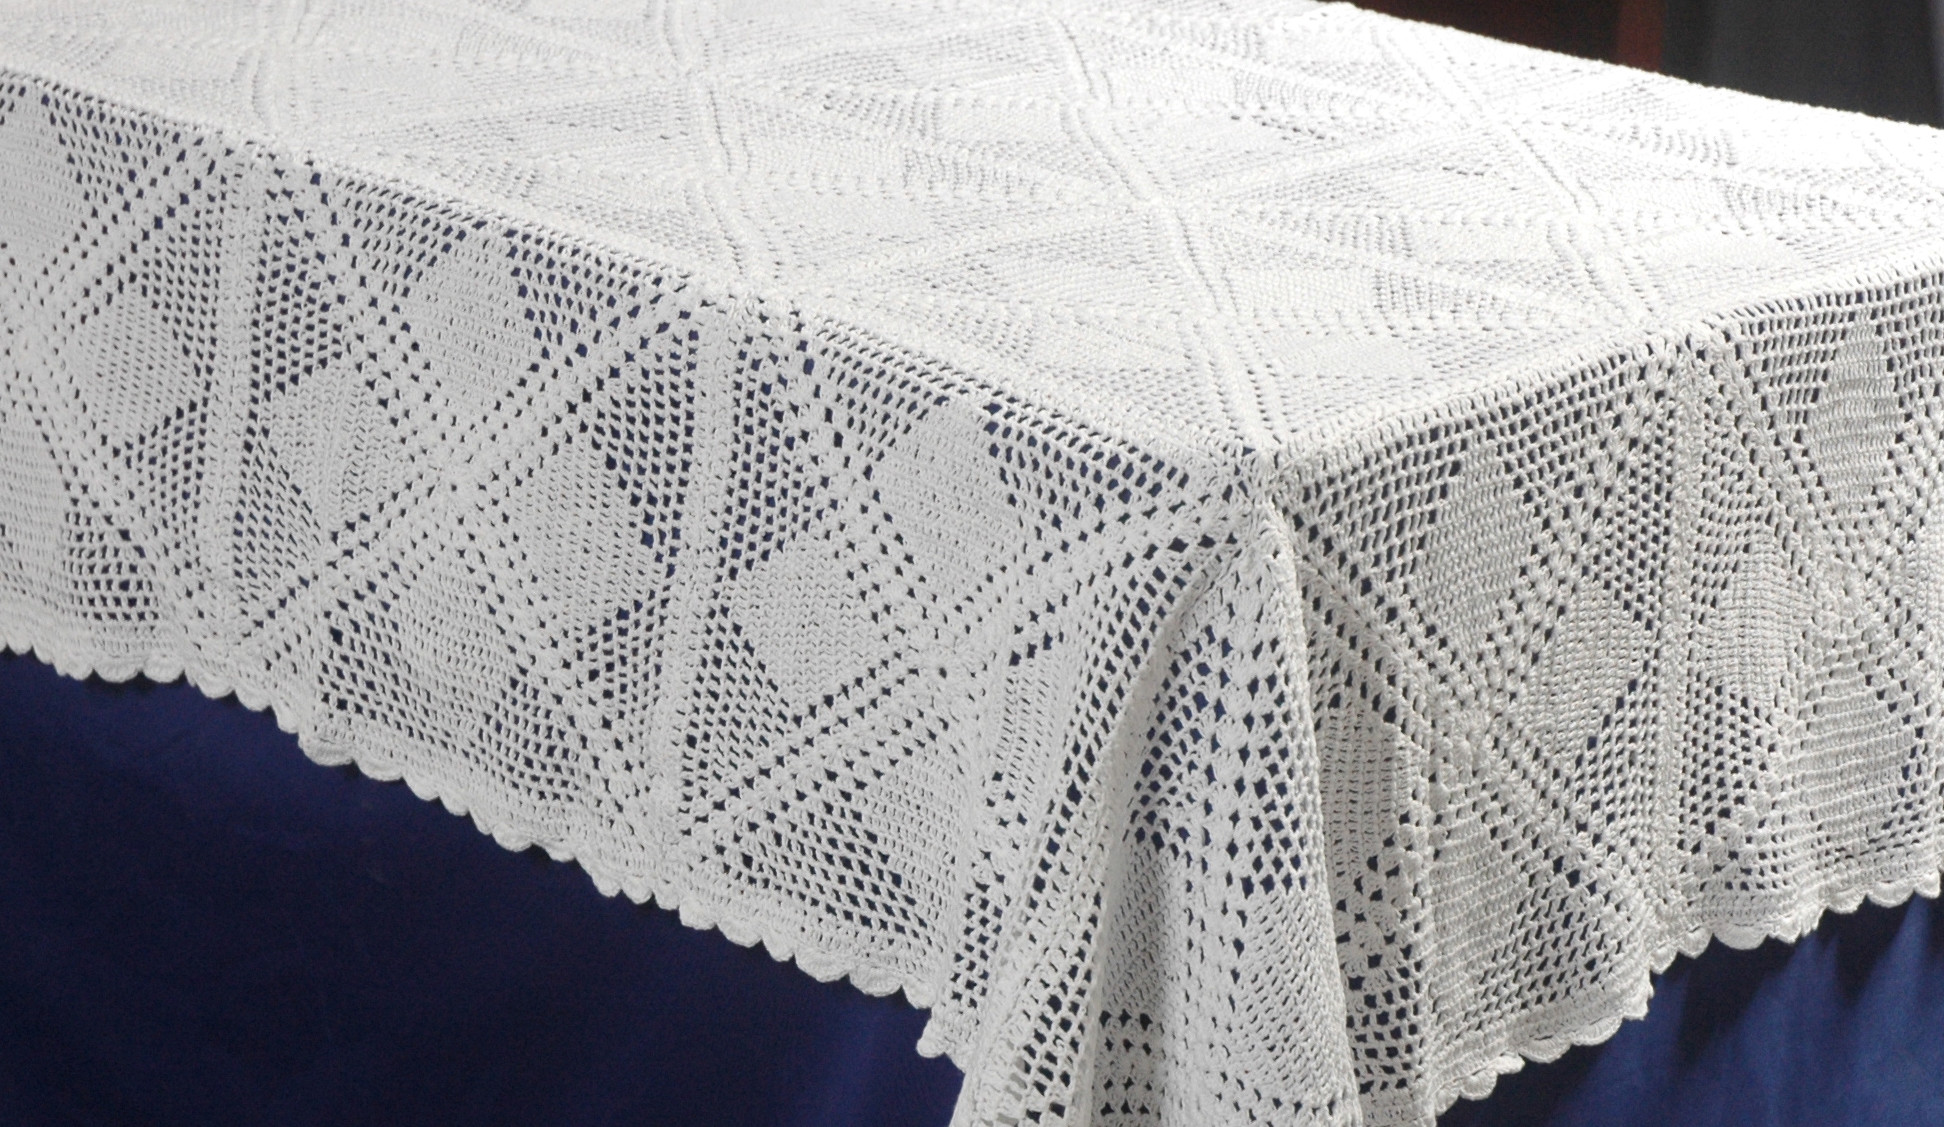 Crochet Rectangle Tablecloth Patterns Awesome Square Table Cloth Crochet Tablecloths Of Beautiful 41 Ideas Crochet Rectangle Tablecloth Patterns